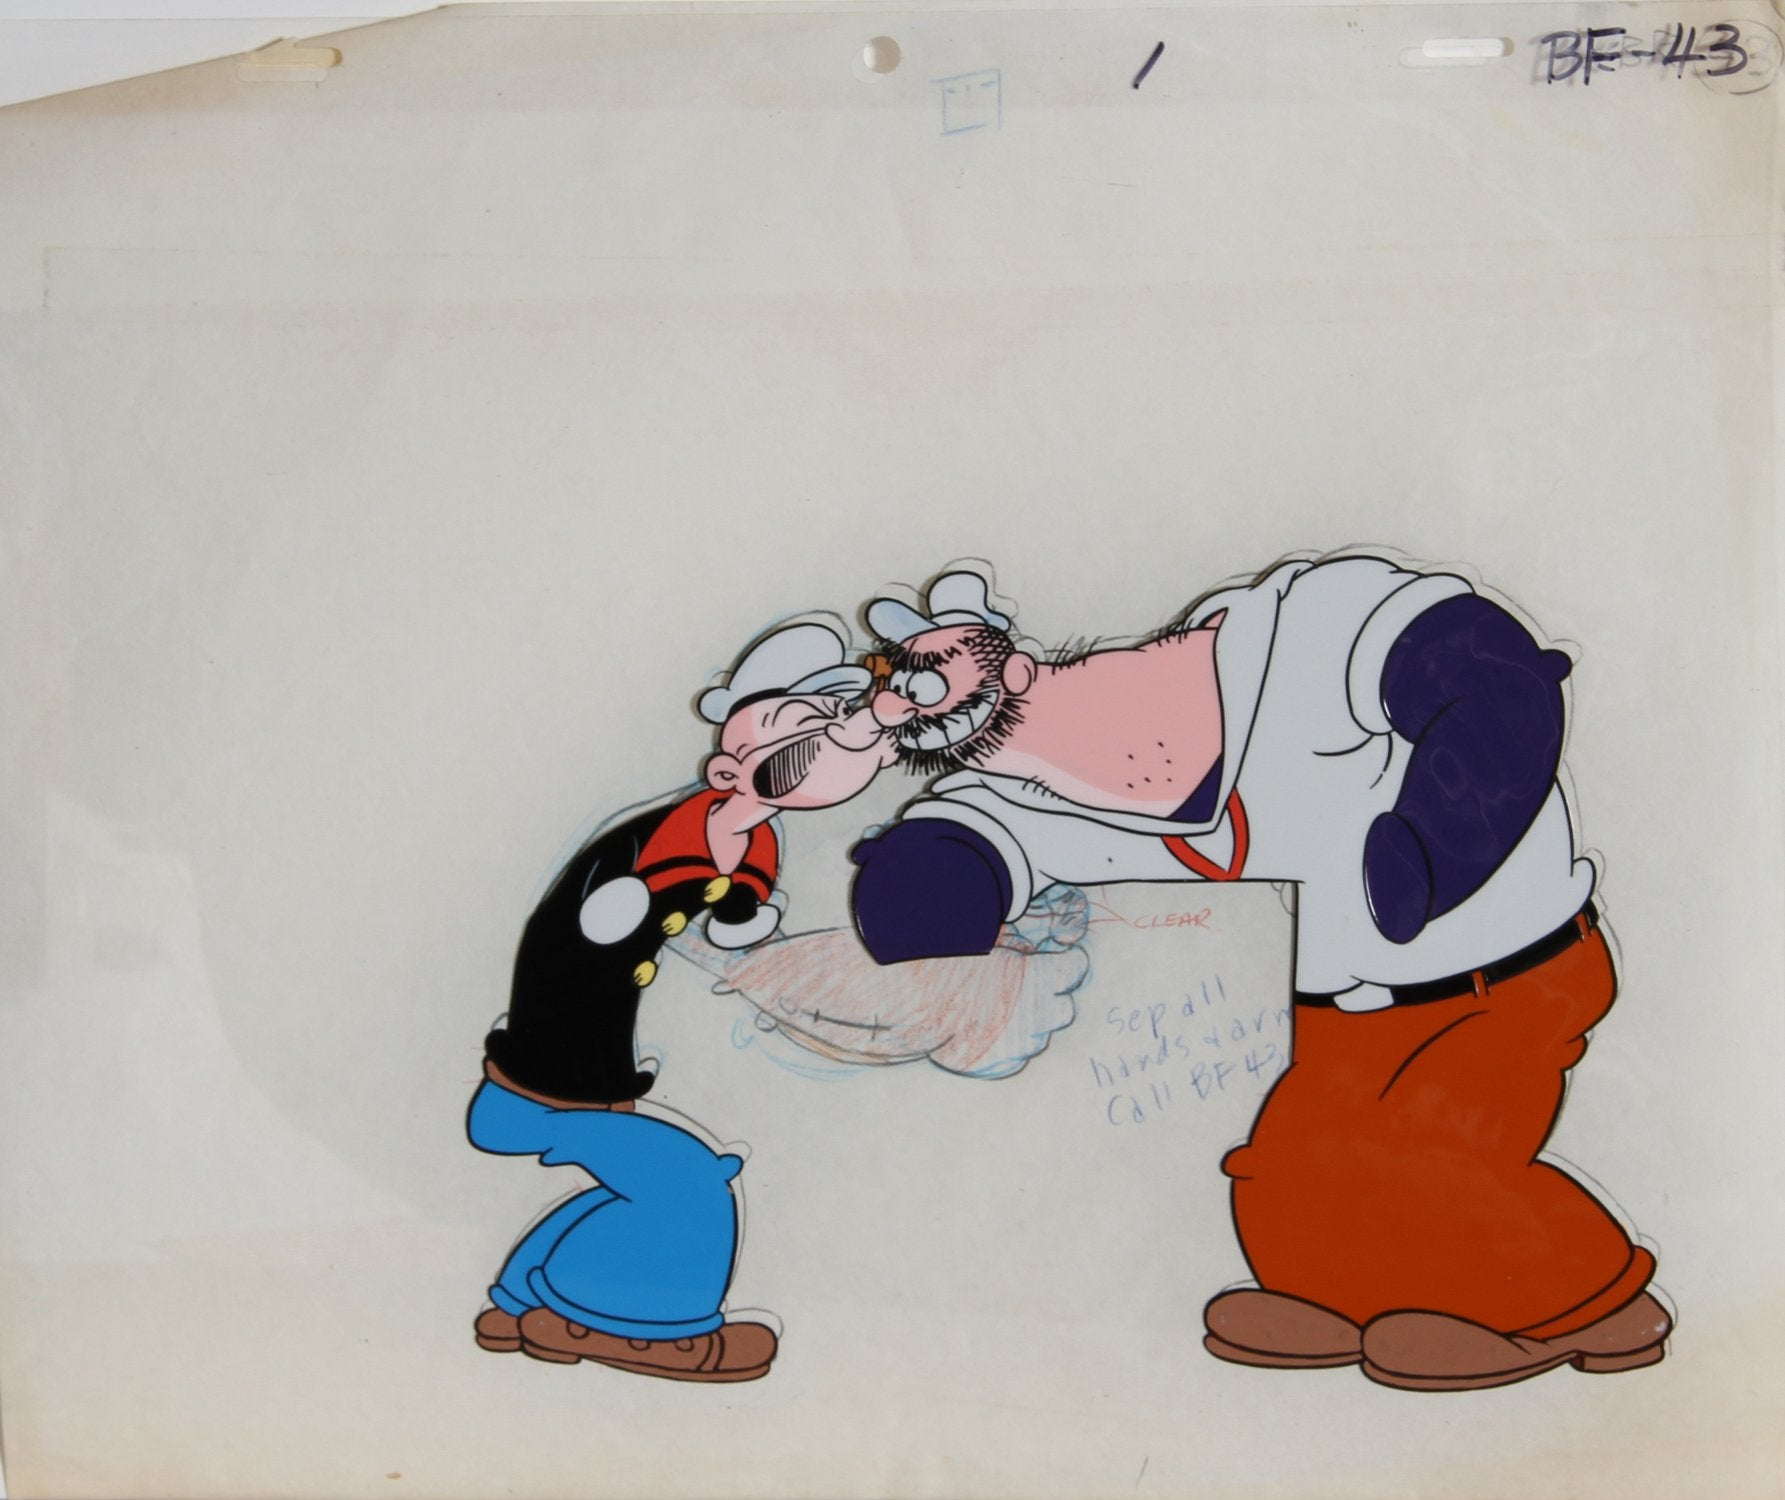 Bud Sagendorf, Popeye 2 Comic Book / Animation - RoGallery